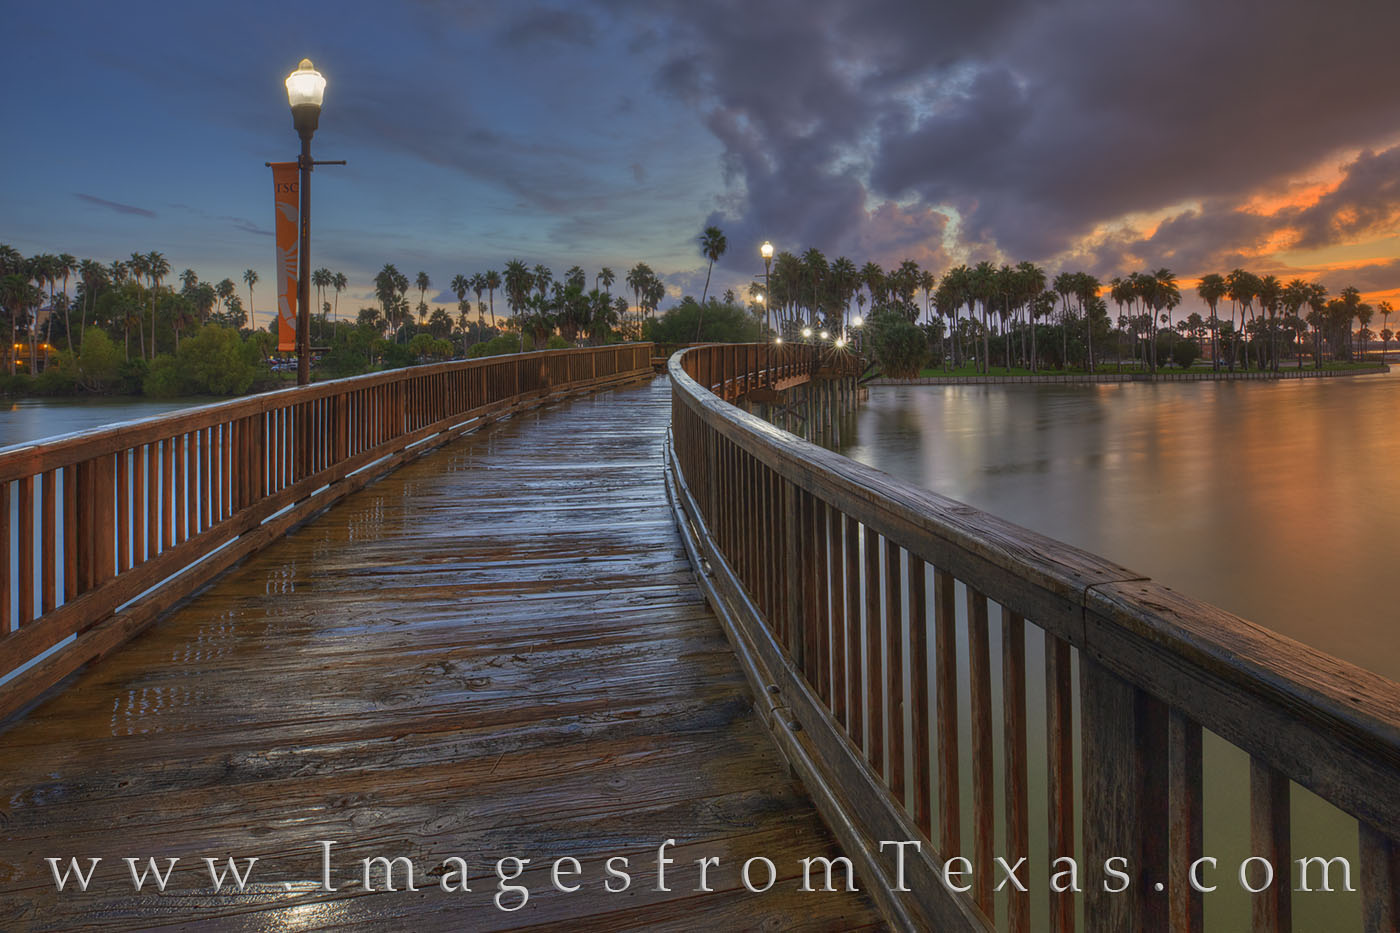 In Brownsville, Texas, a footbridge spans one of the beautiful resacas that are found across this border town. A brief rainstorm...